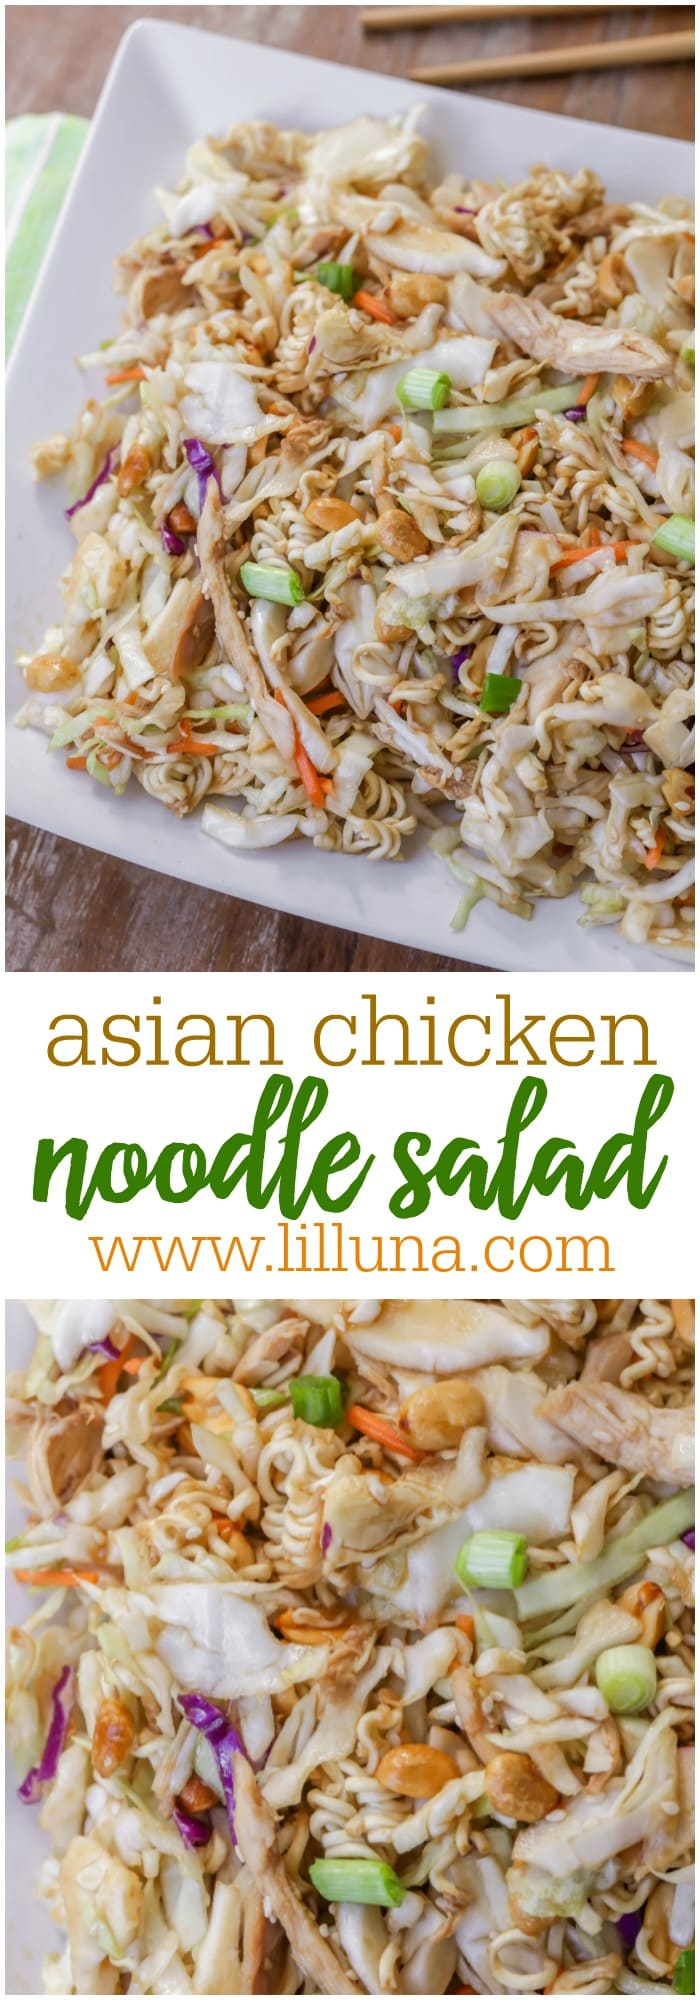 Interesting Asian chicken noodle salad sorry